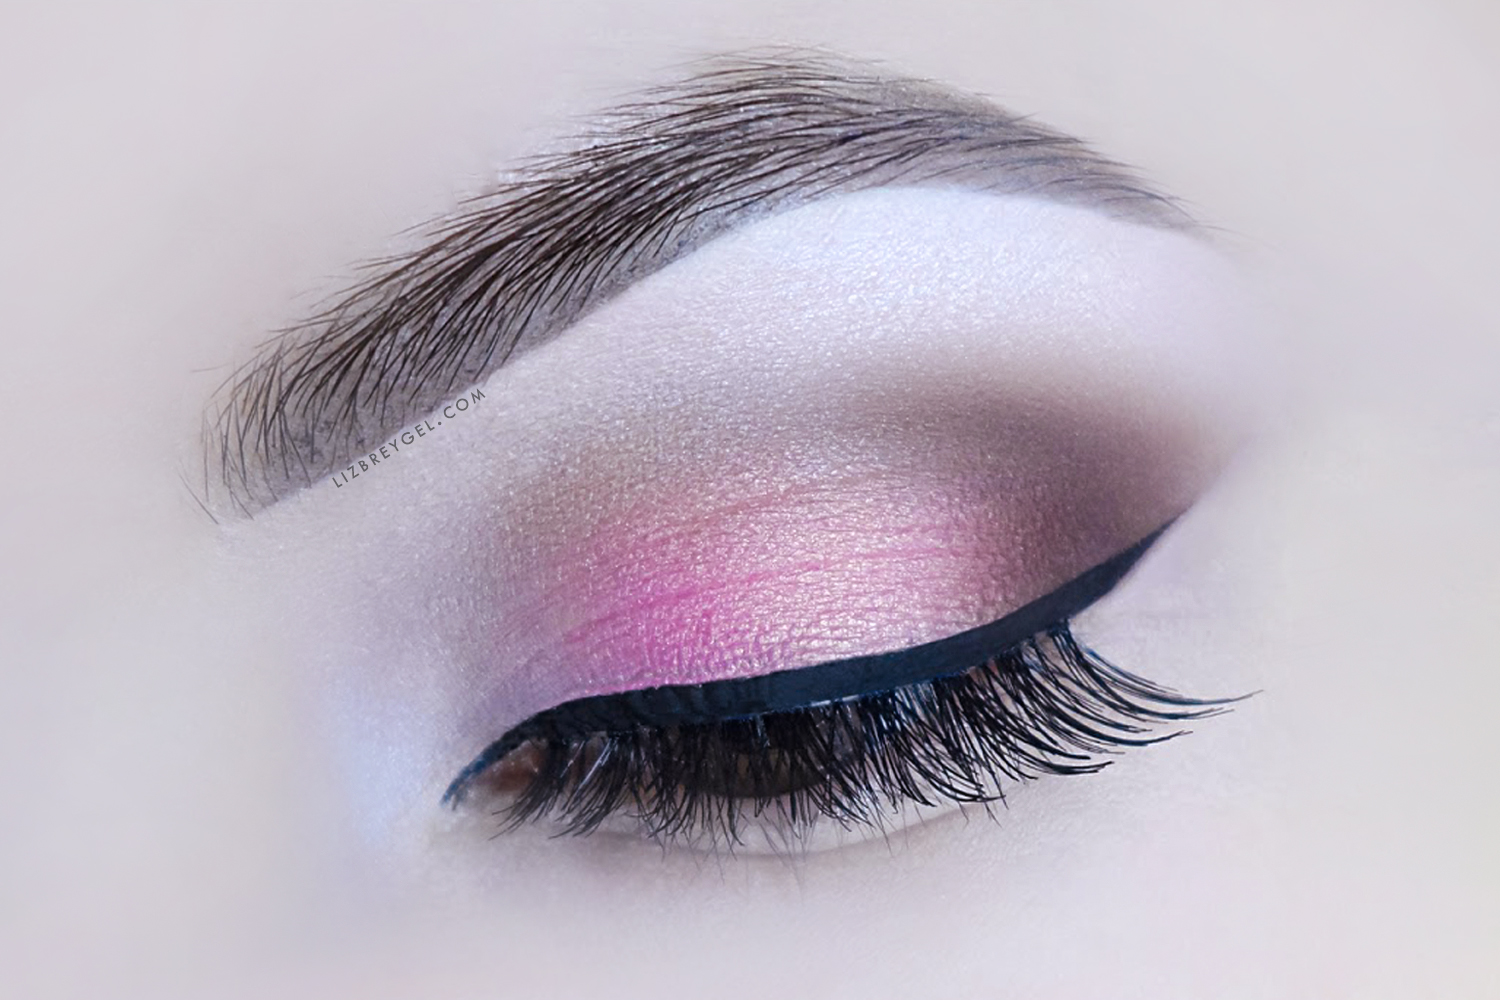 a close up picture of a closed eye with soft, romantic makeup look for Valentines Day